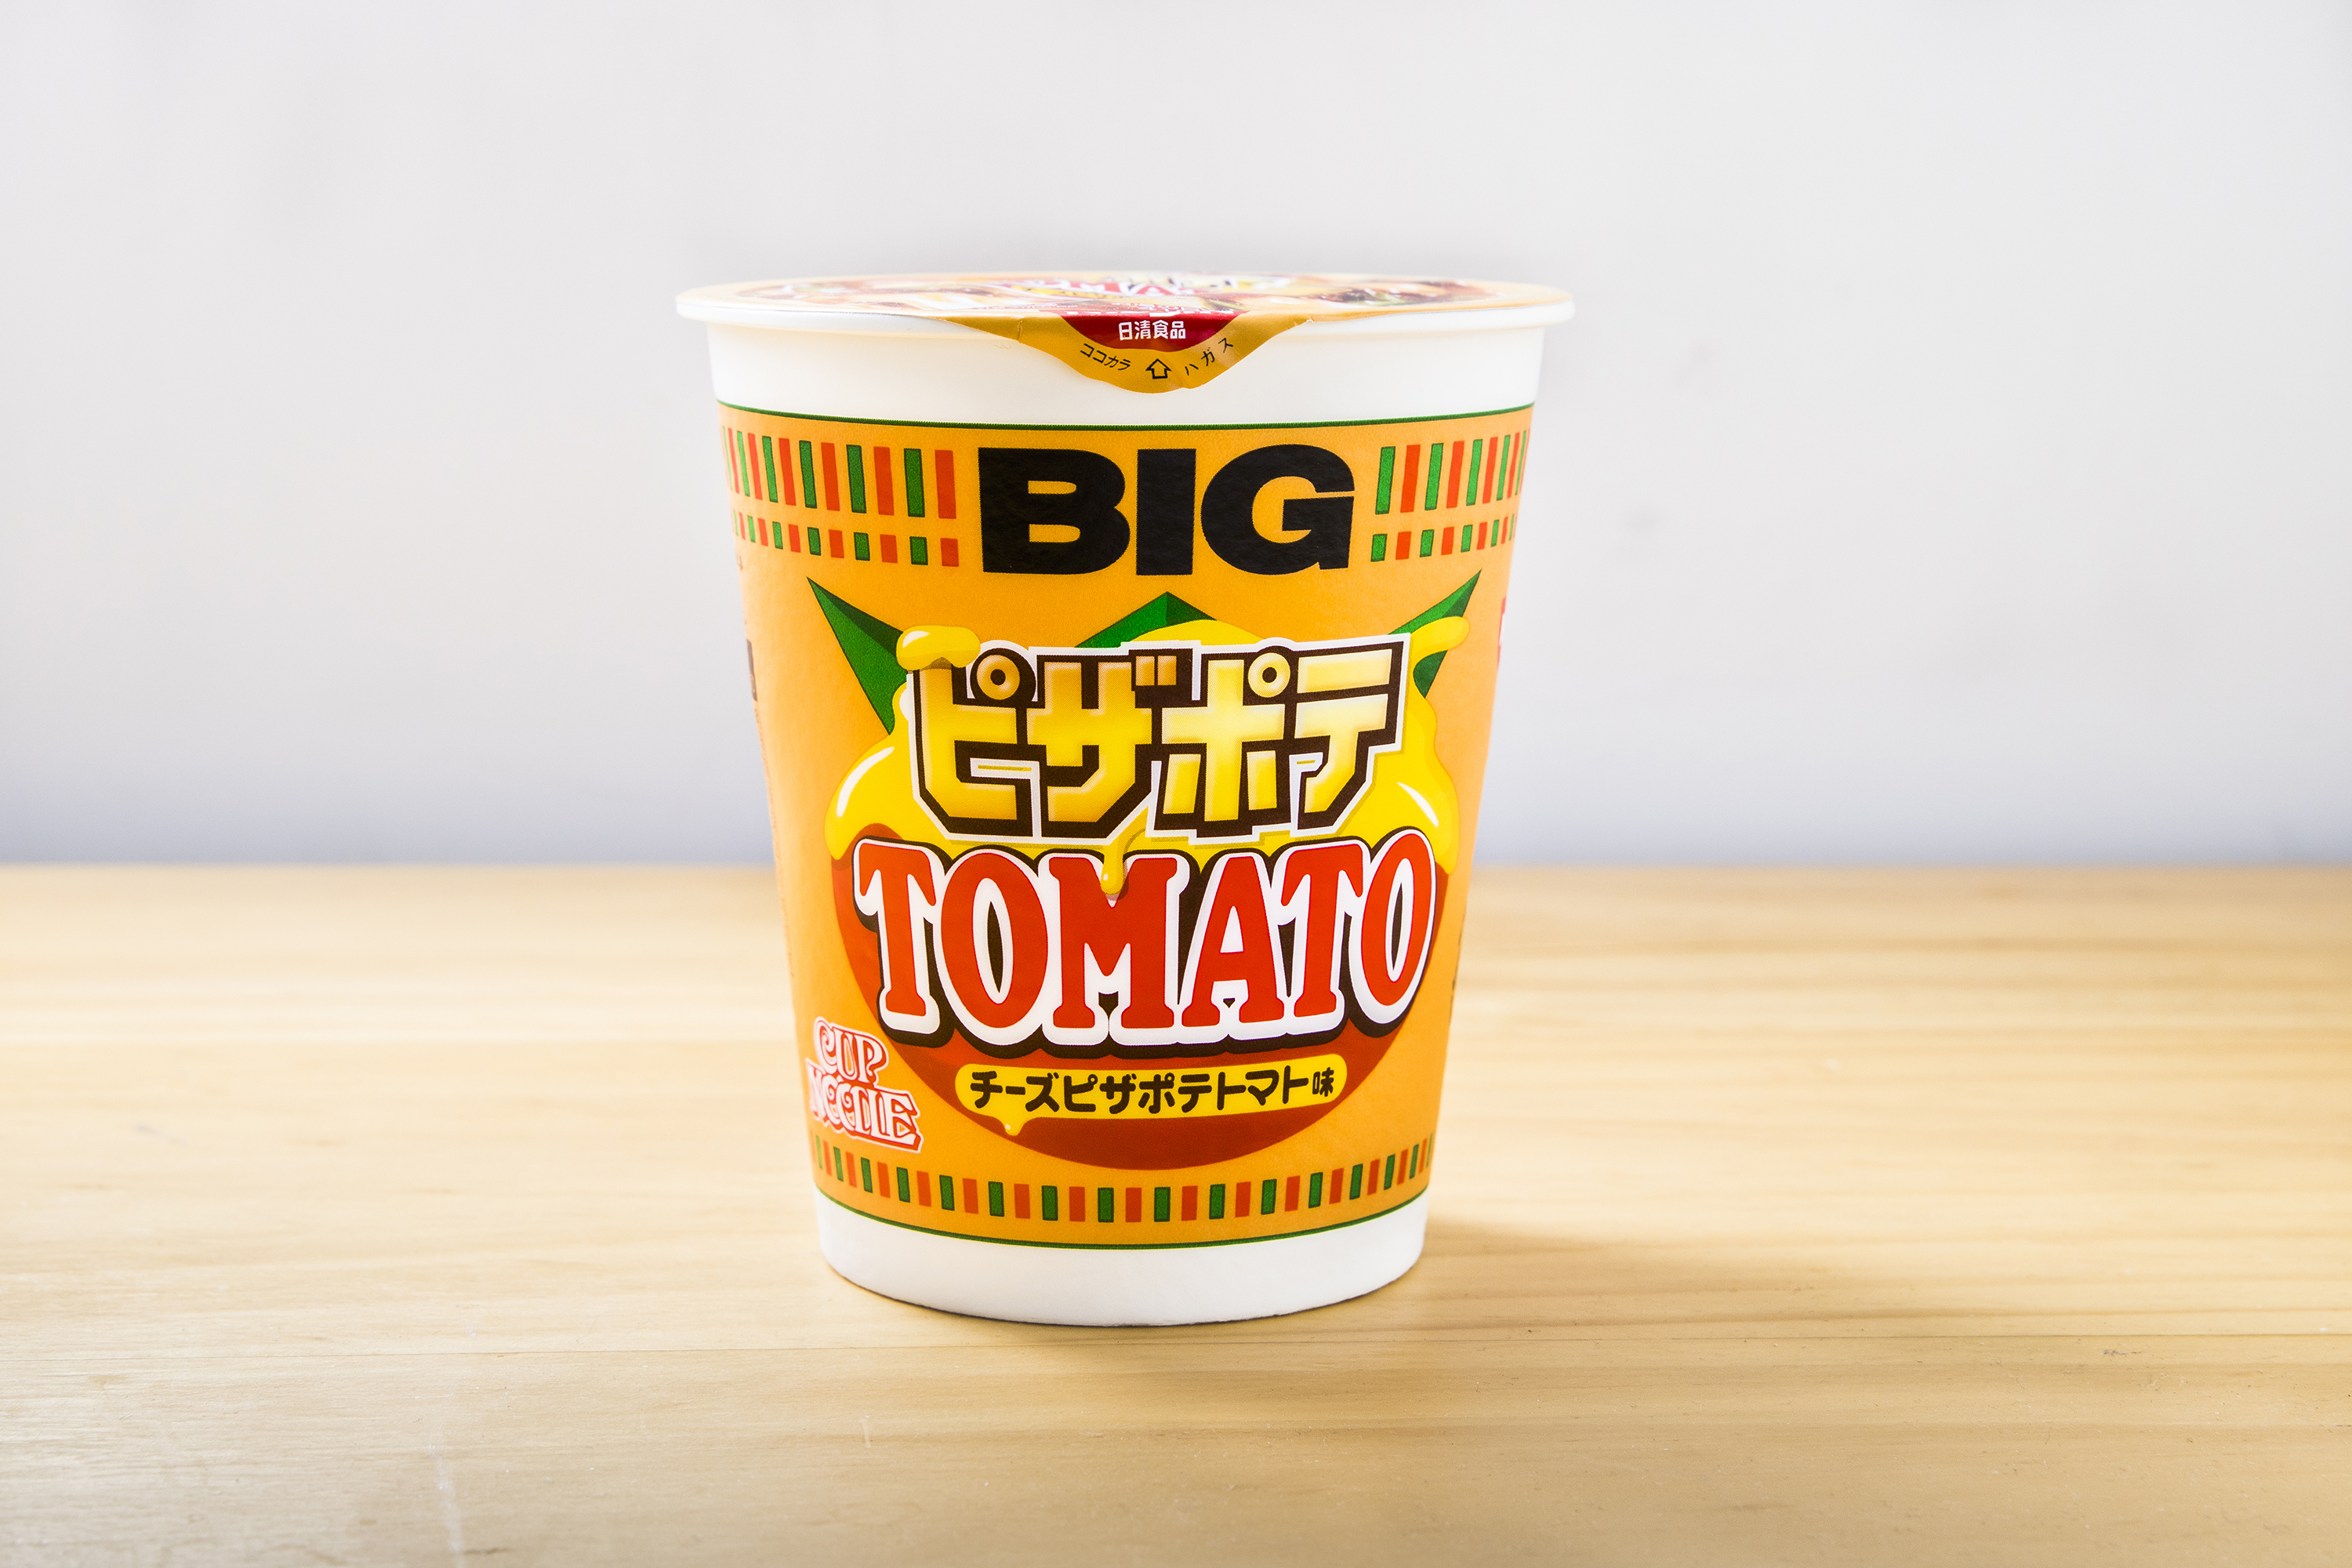 Tomato pizza cup noodles